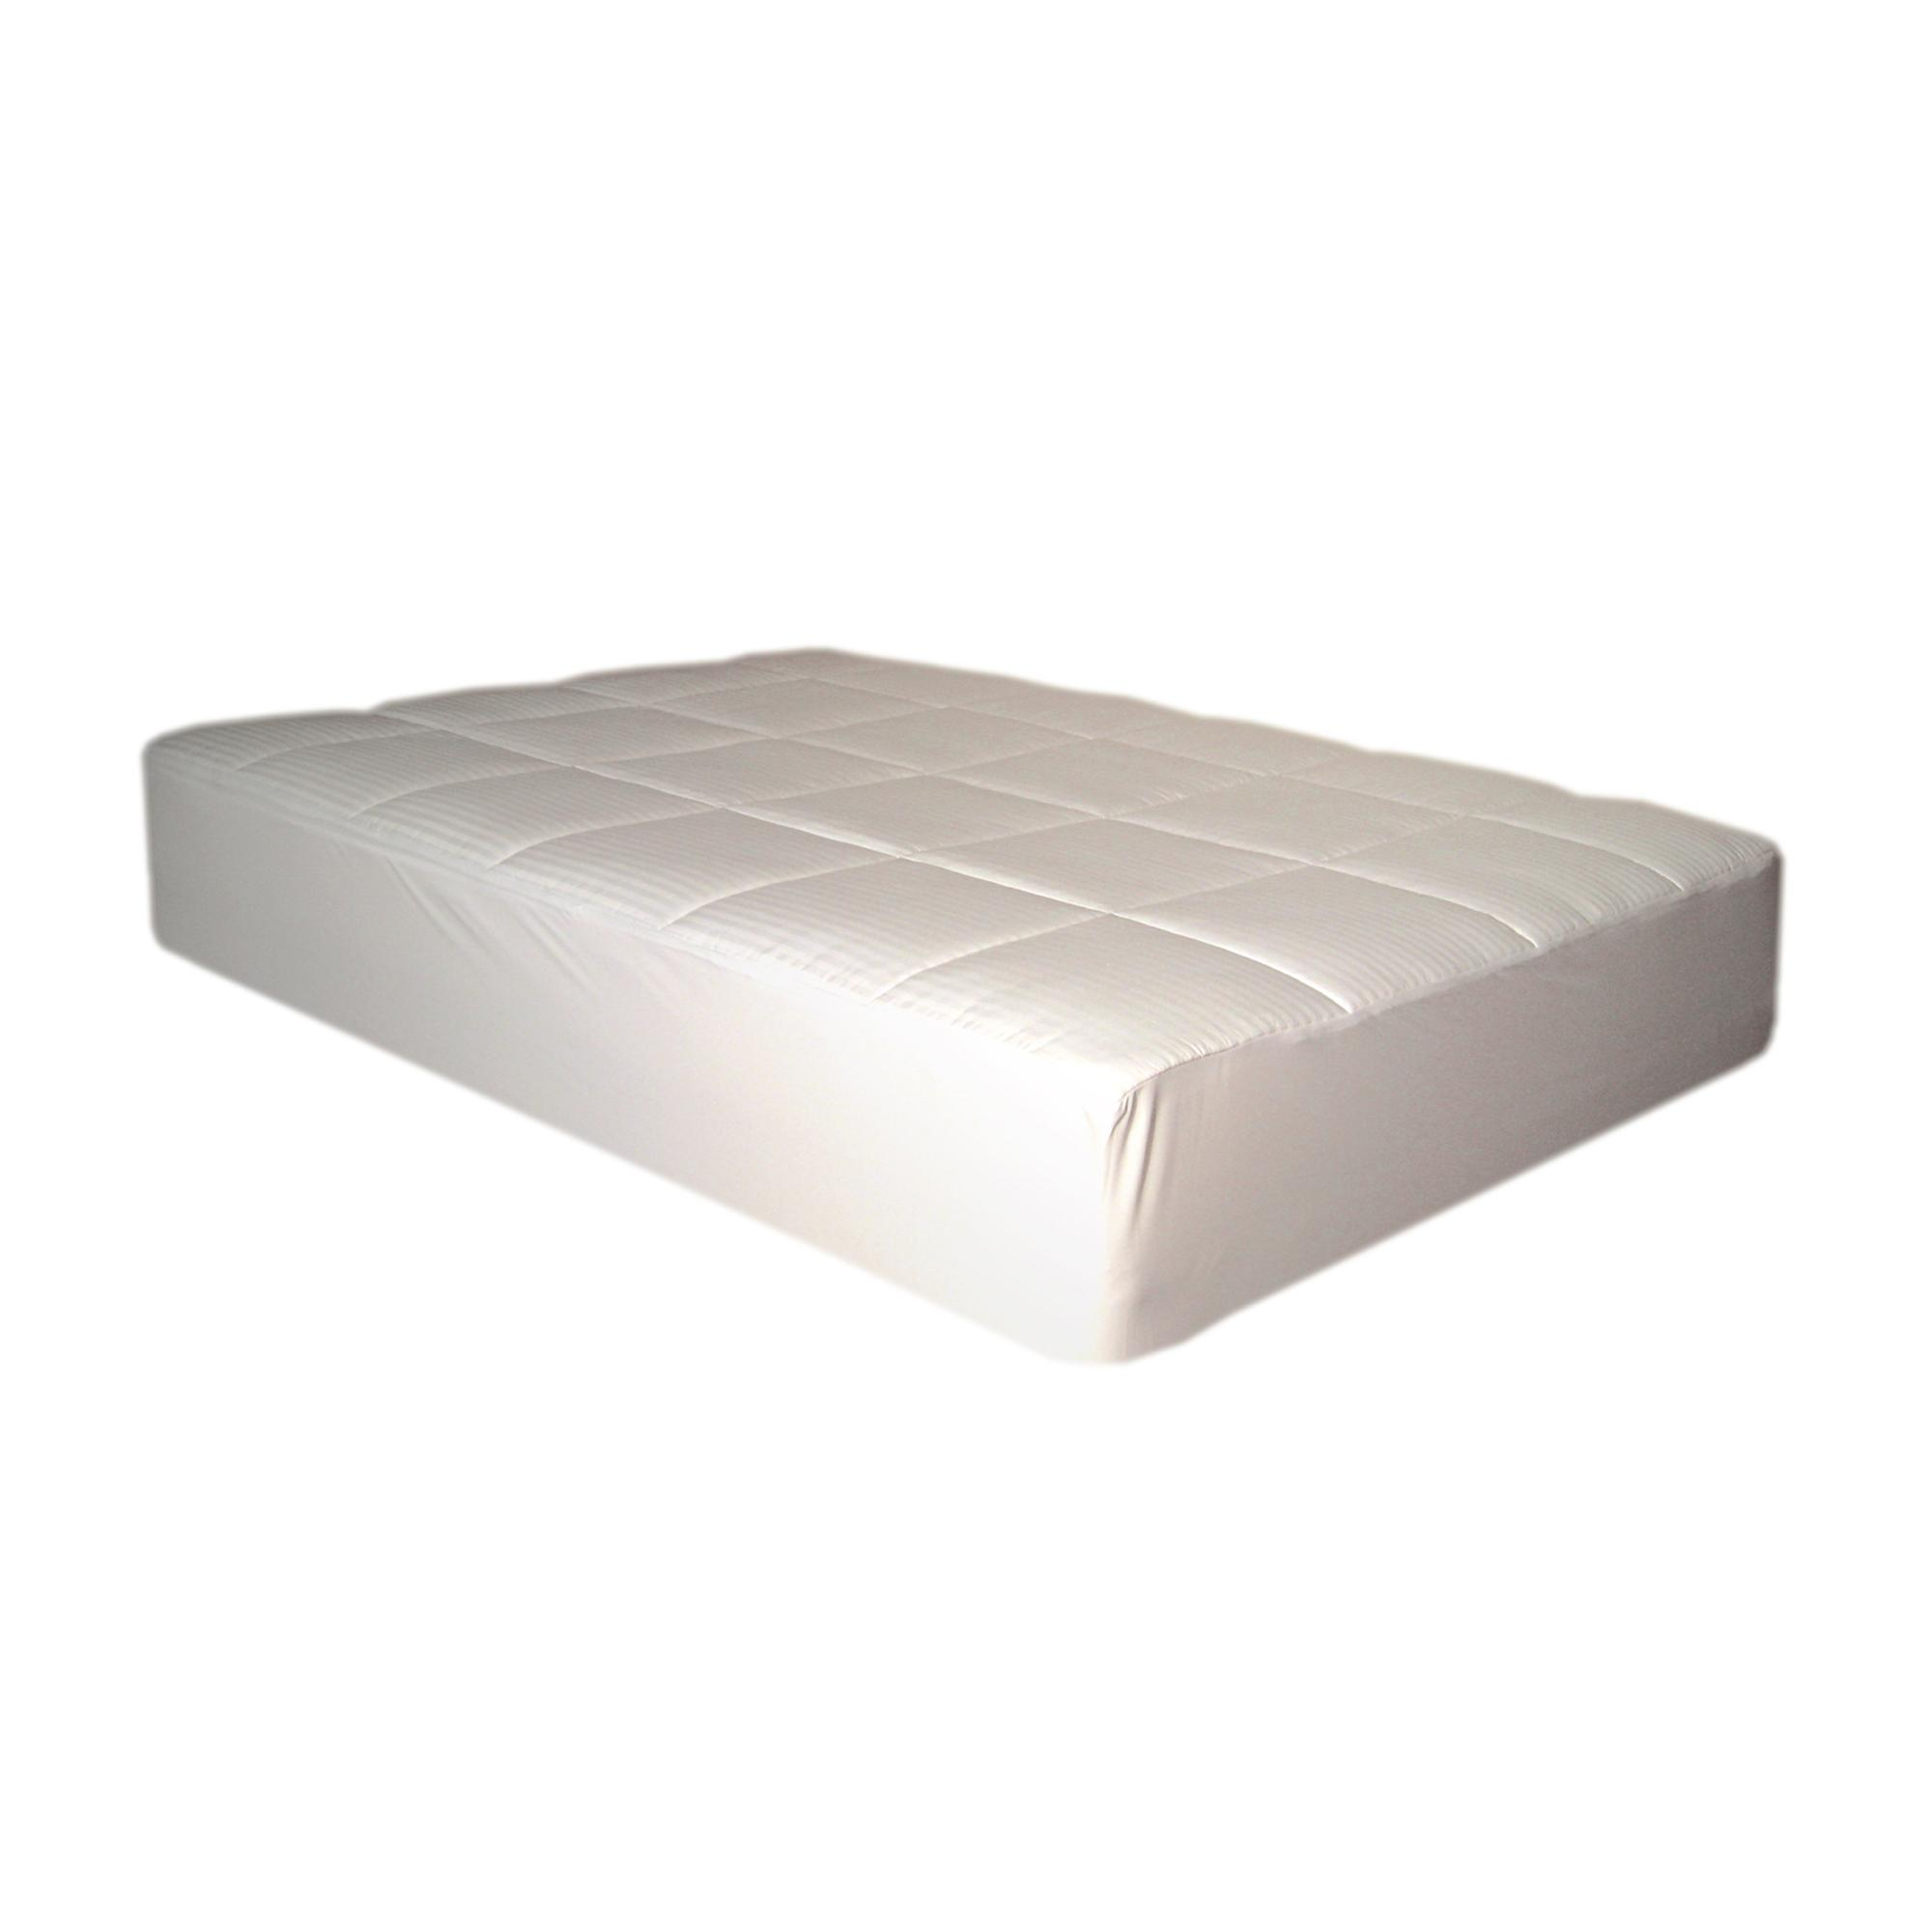 Nanofibre Water Resistant Queen/ King/ Cal King-size Mattress Pad - Thumbnail 0